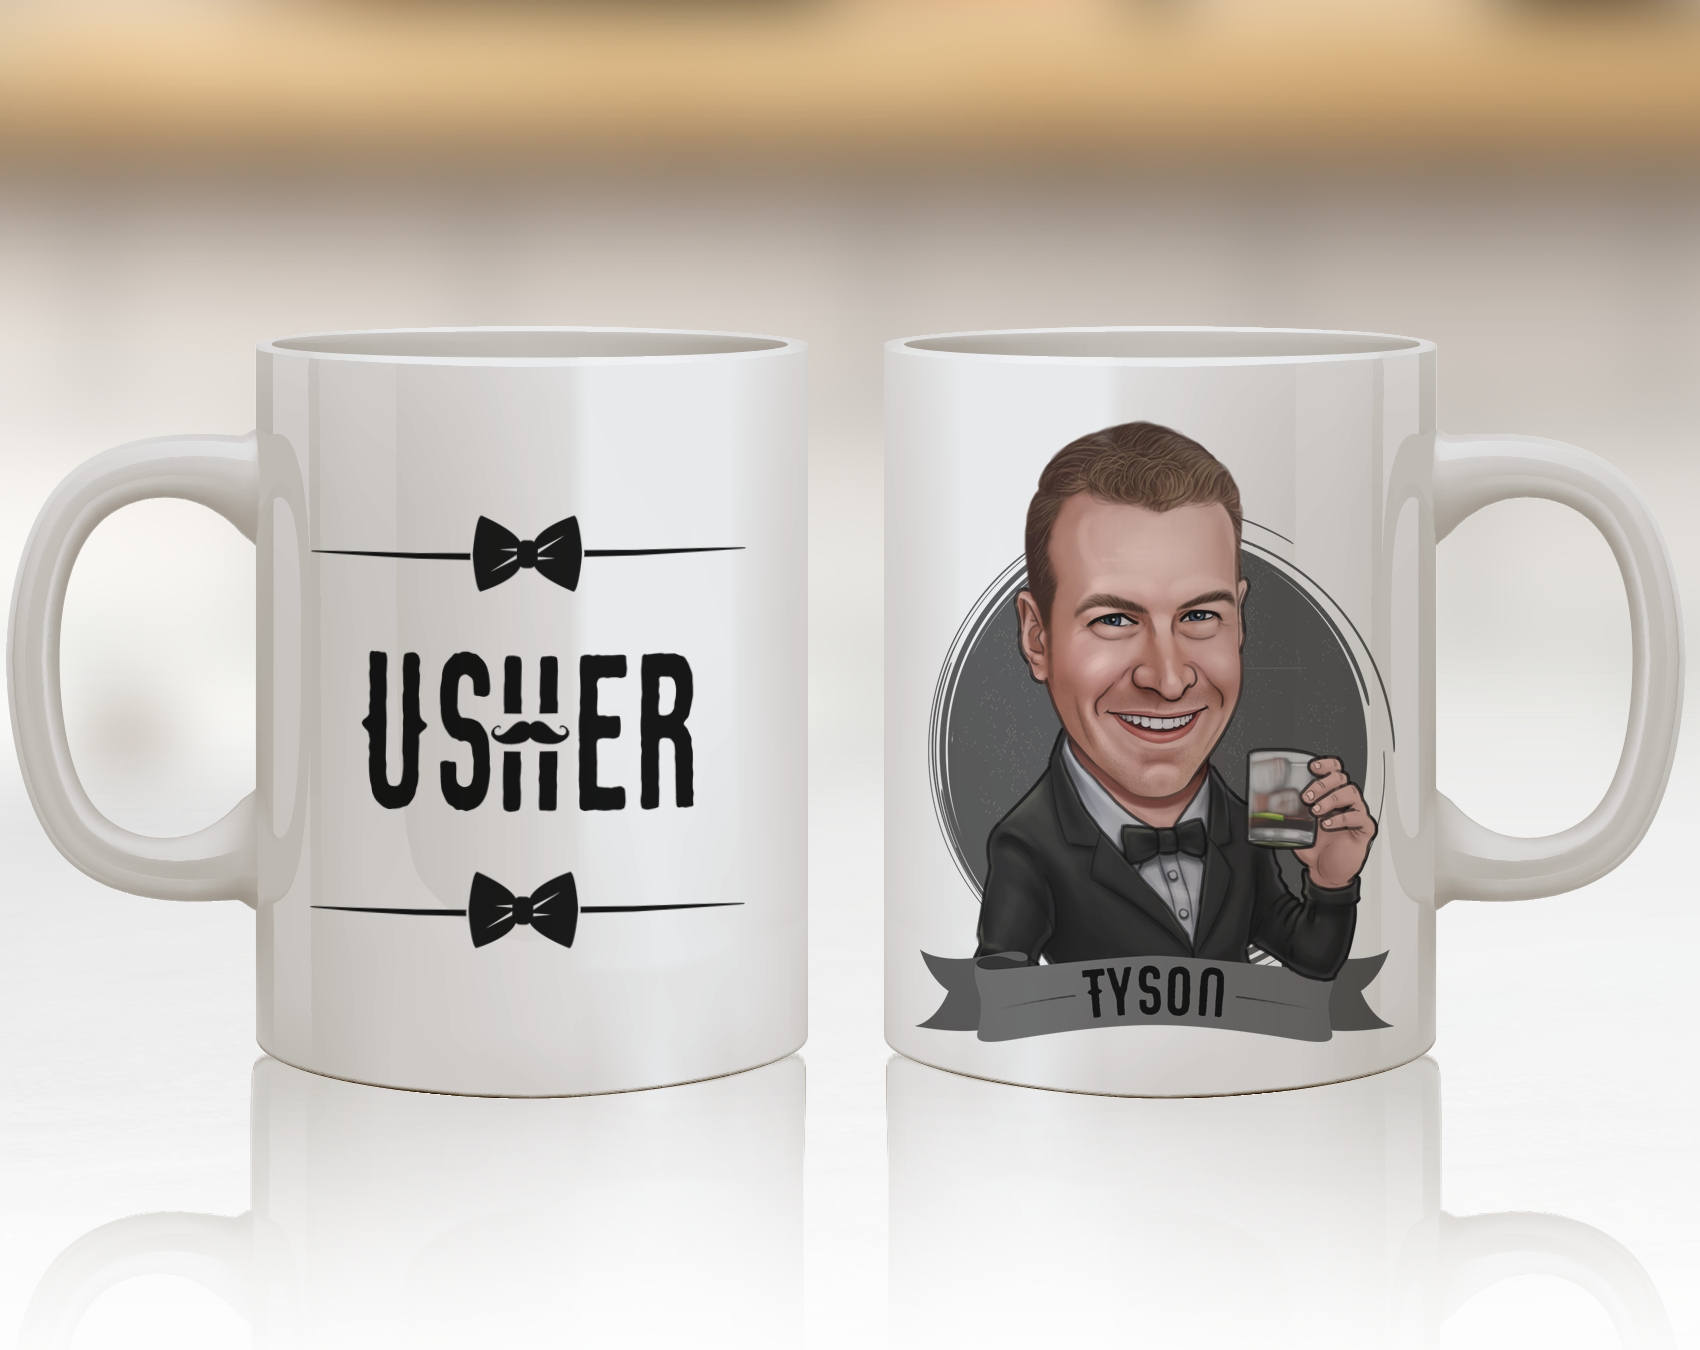 Wedding Gift Ideas For Bestman And Ushers: 12 Best Usher Gifts For Weddings